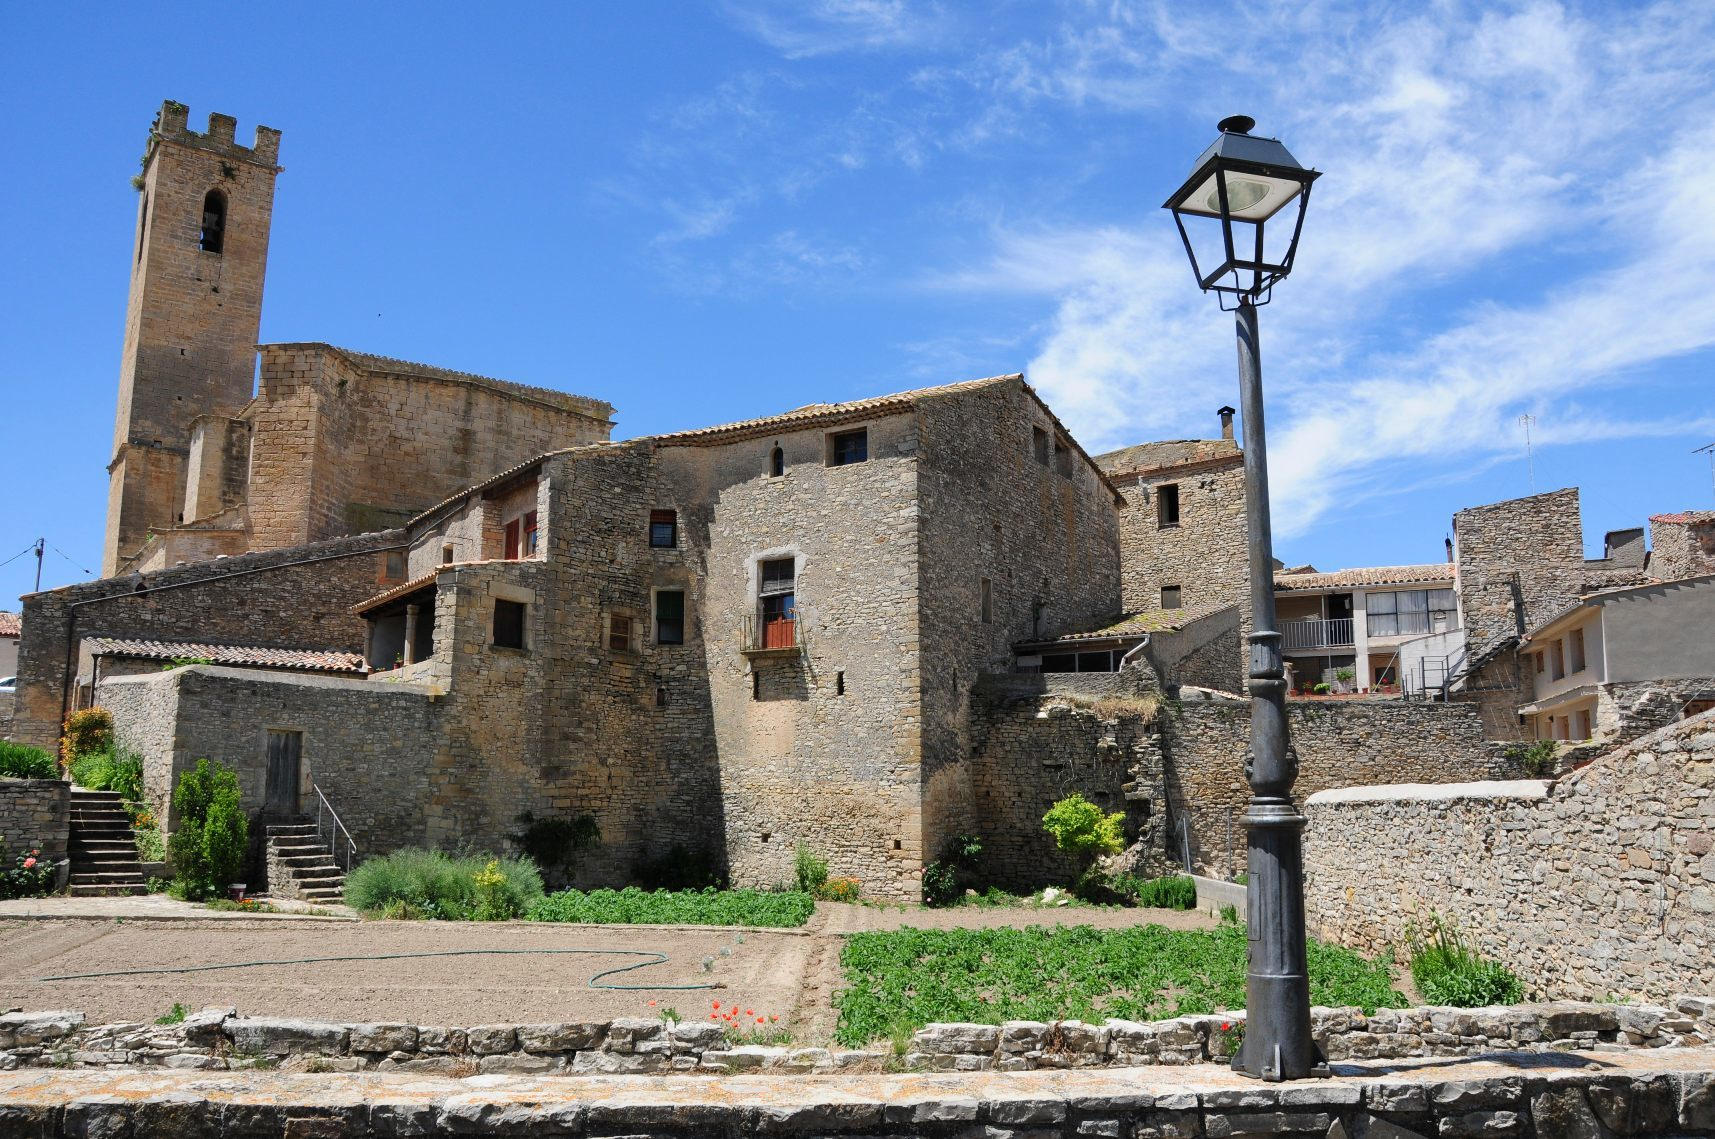 Medieval town of Conesa